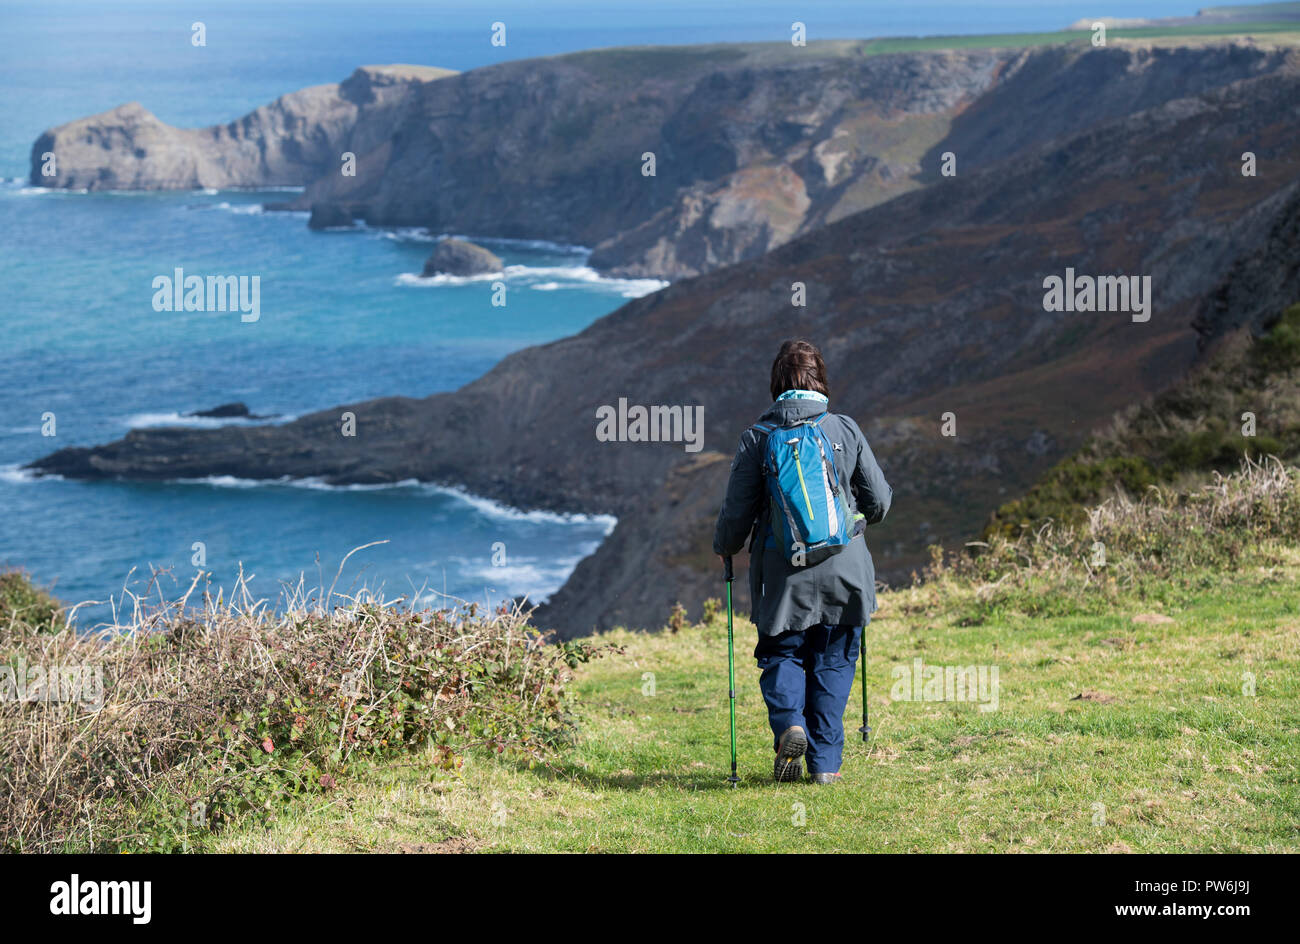 Female hiker walking along the South West Coast Path between Boscastle and Crackington Haven in Cornwall, England, UK - Stock Image